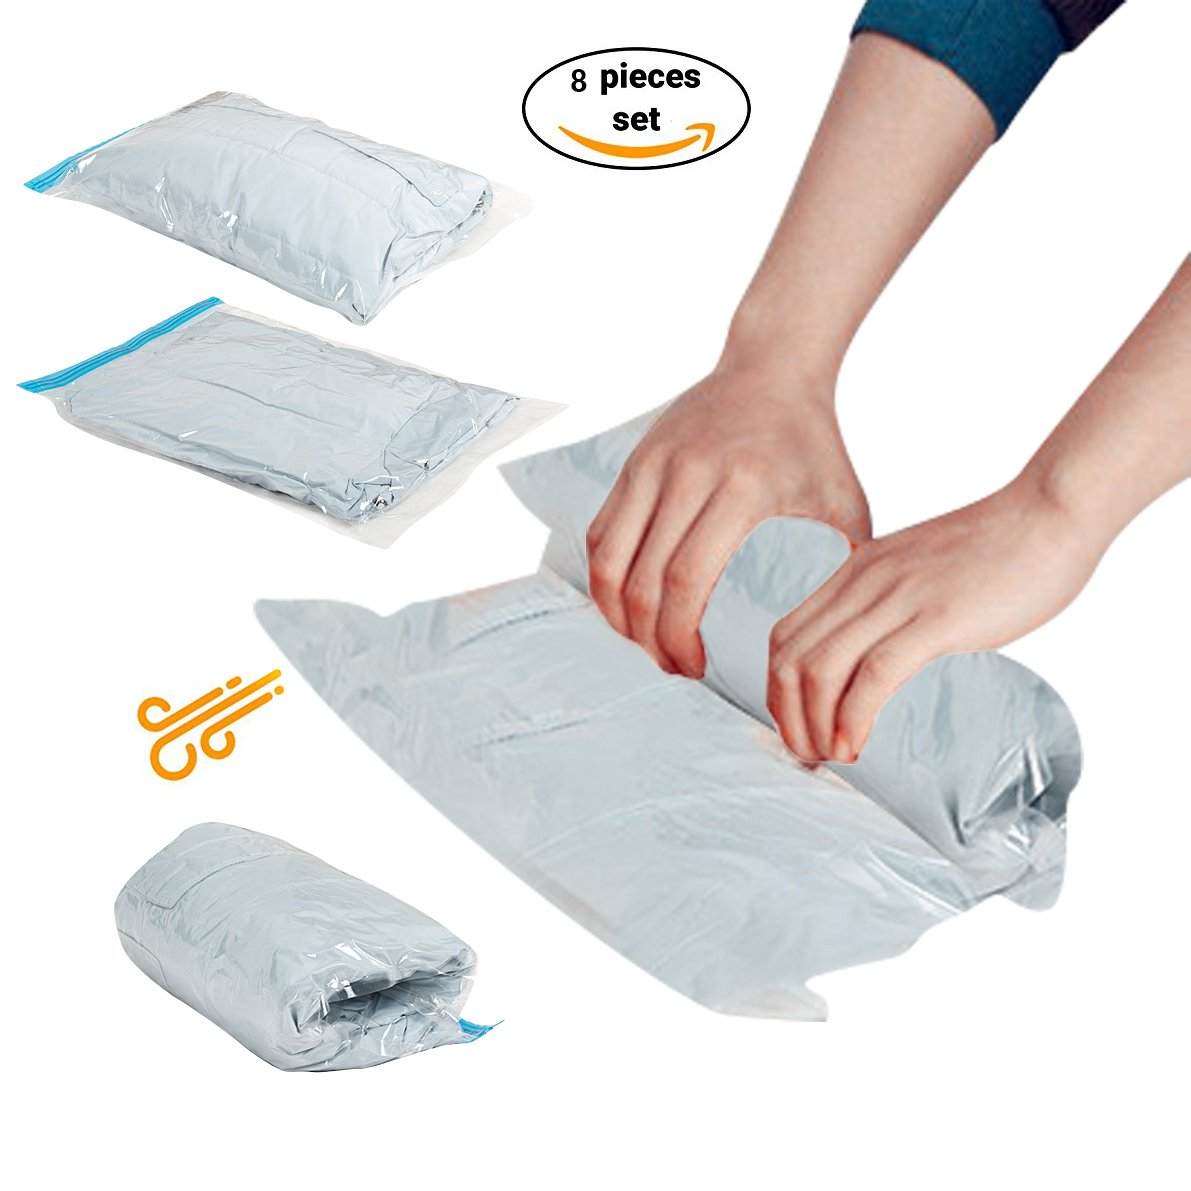 Stephenie Travel Storage Bags for Travel Space Saver Packing Sacks Rolling Compression Bag for Luggage Air Space Roll up Bags No Vacuum or Pump Needed